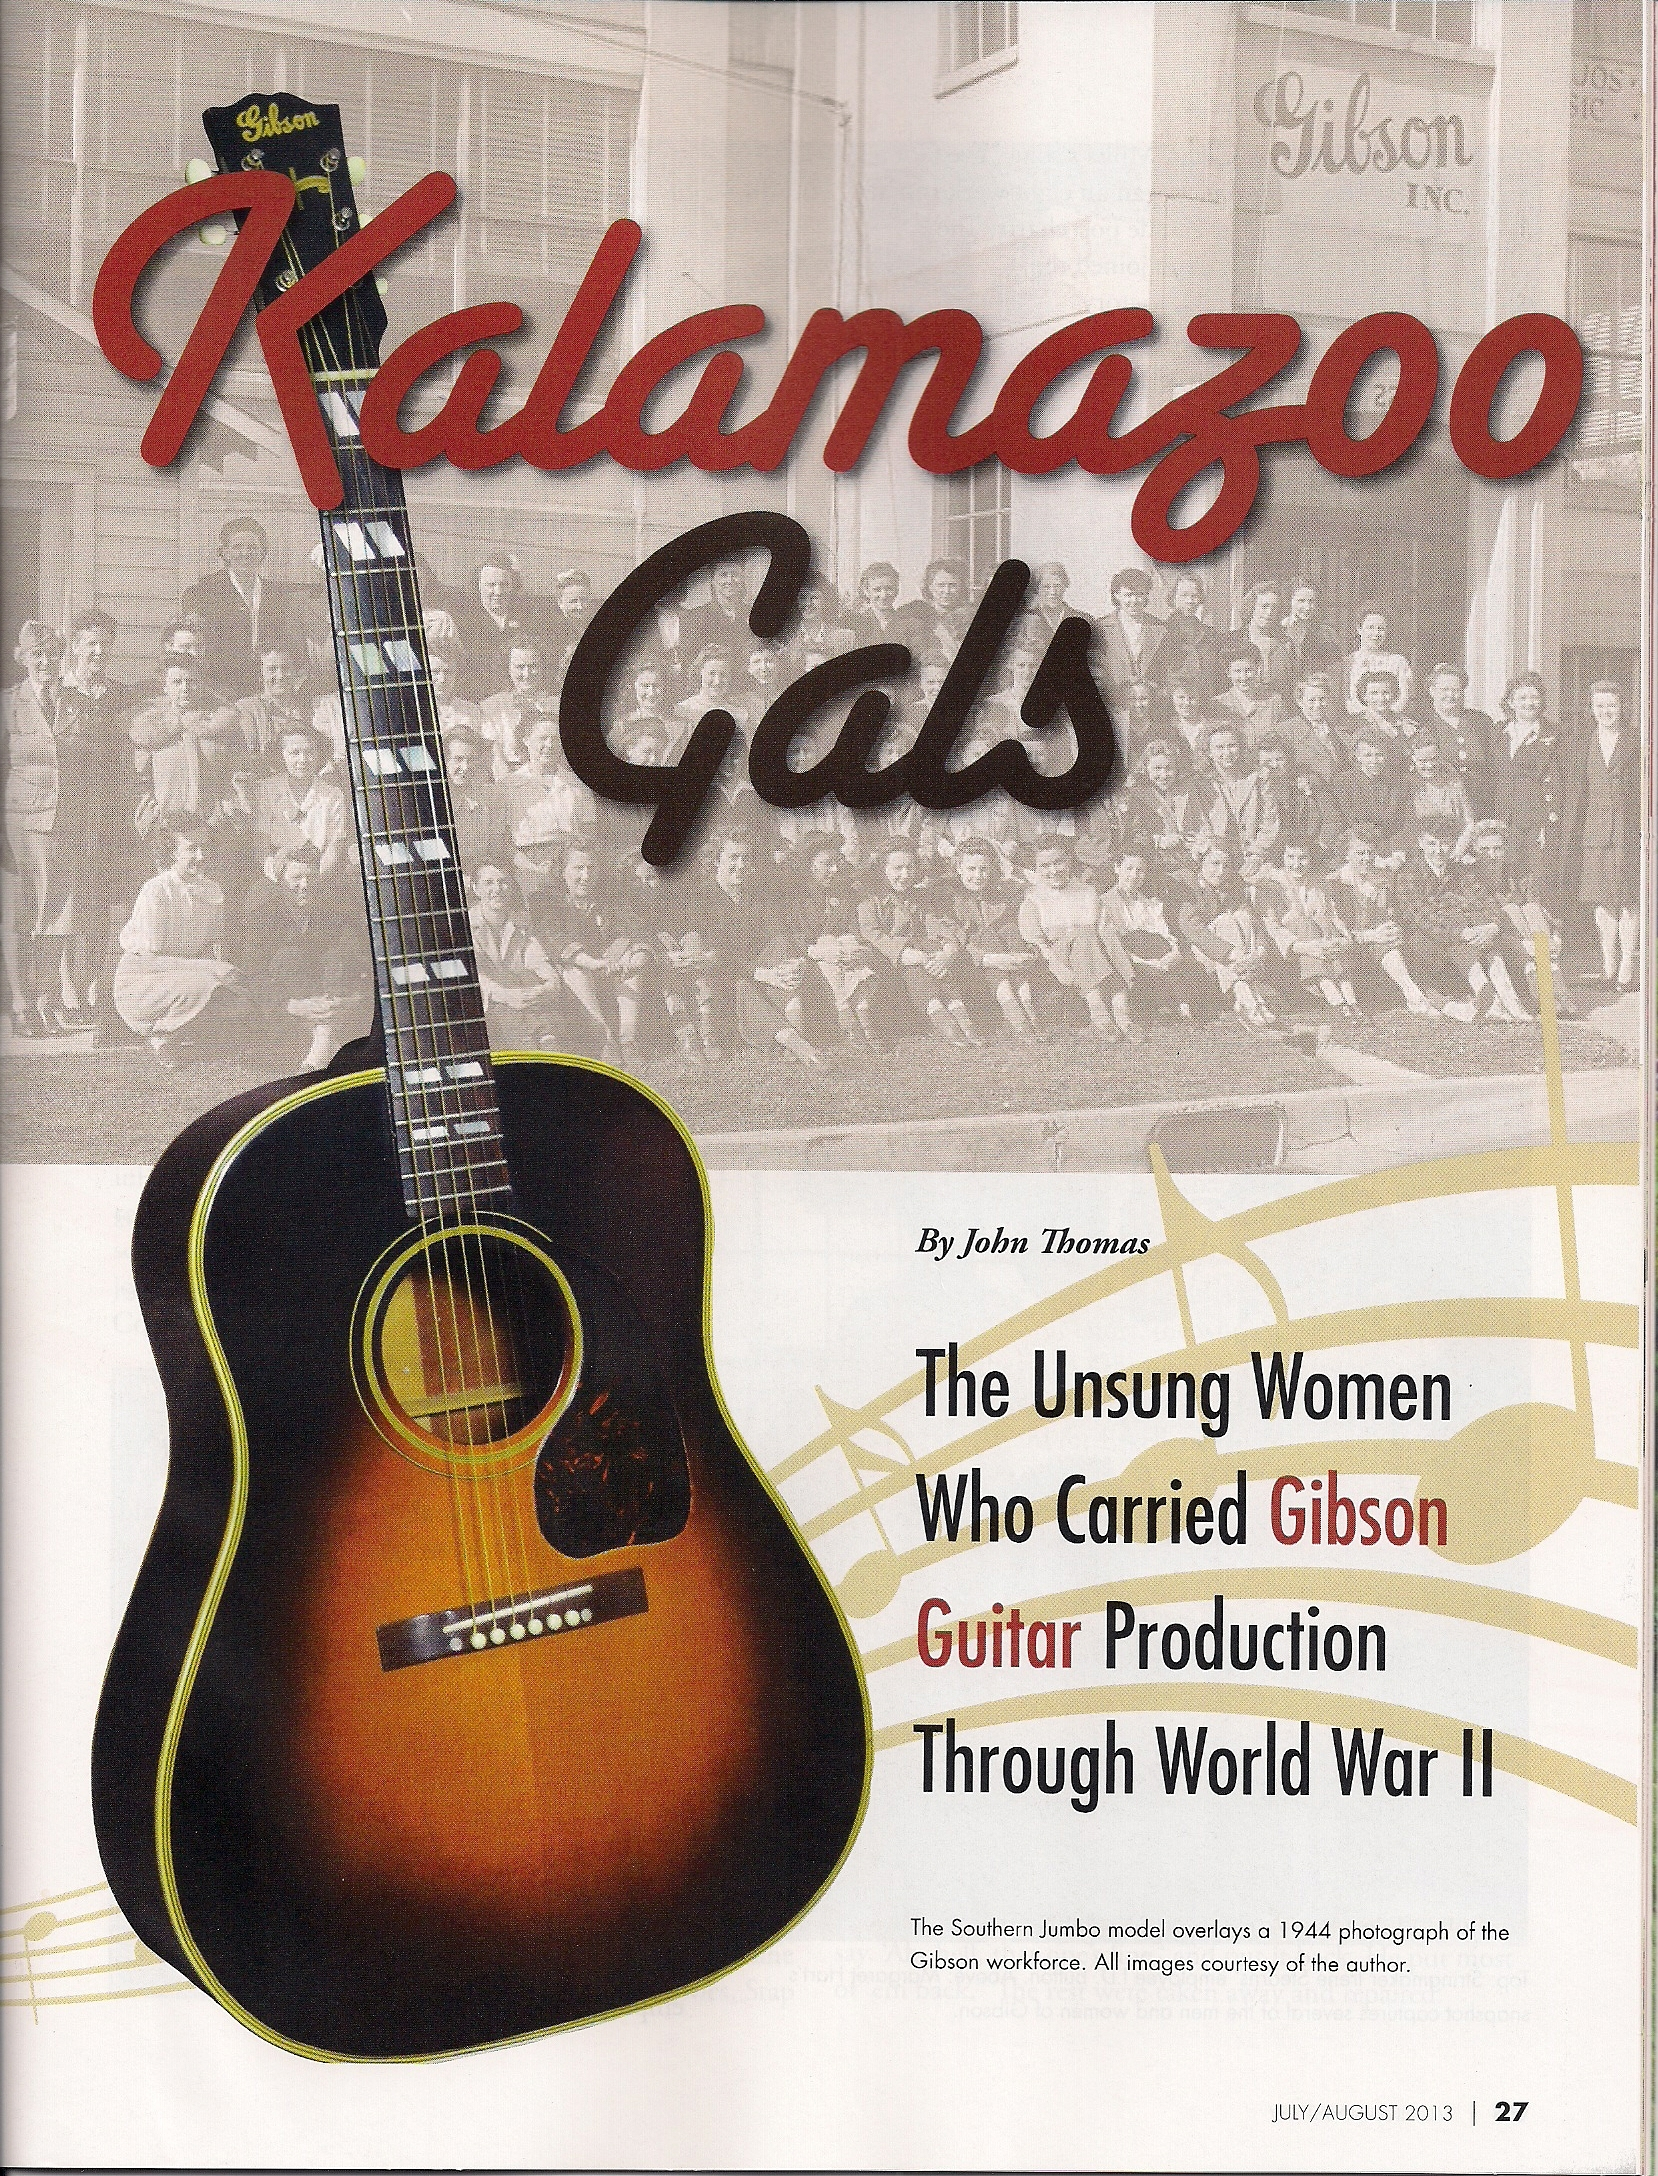 Kalamazoo Gals in Michigan History Magazine 2012